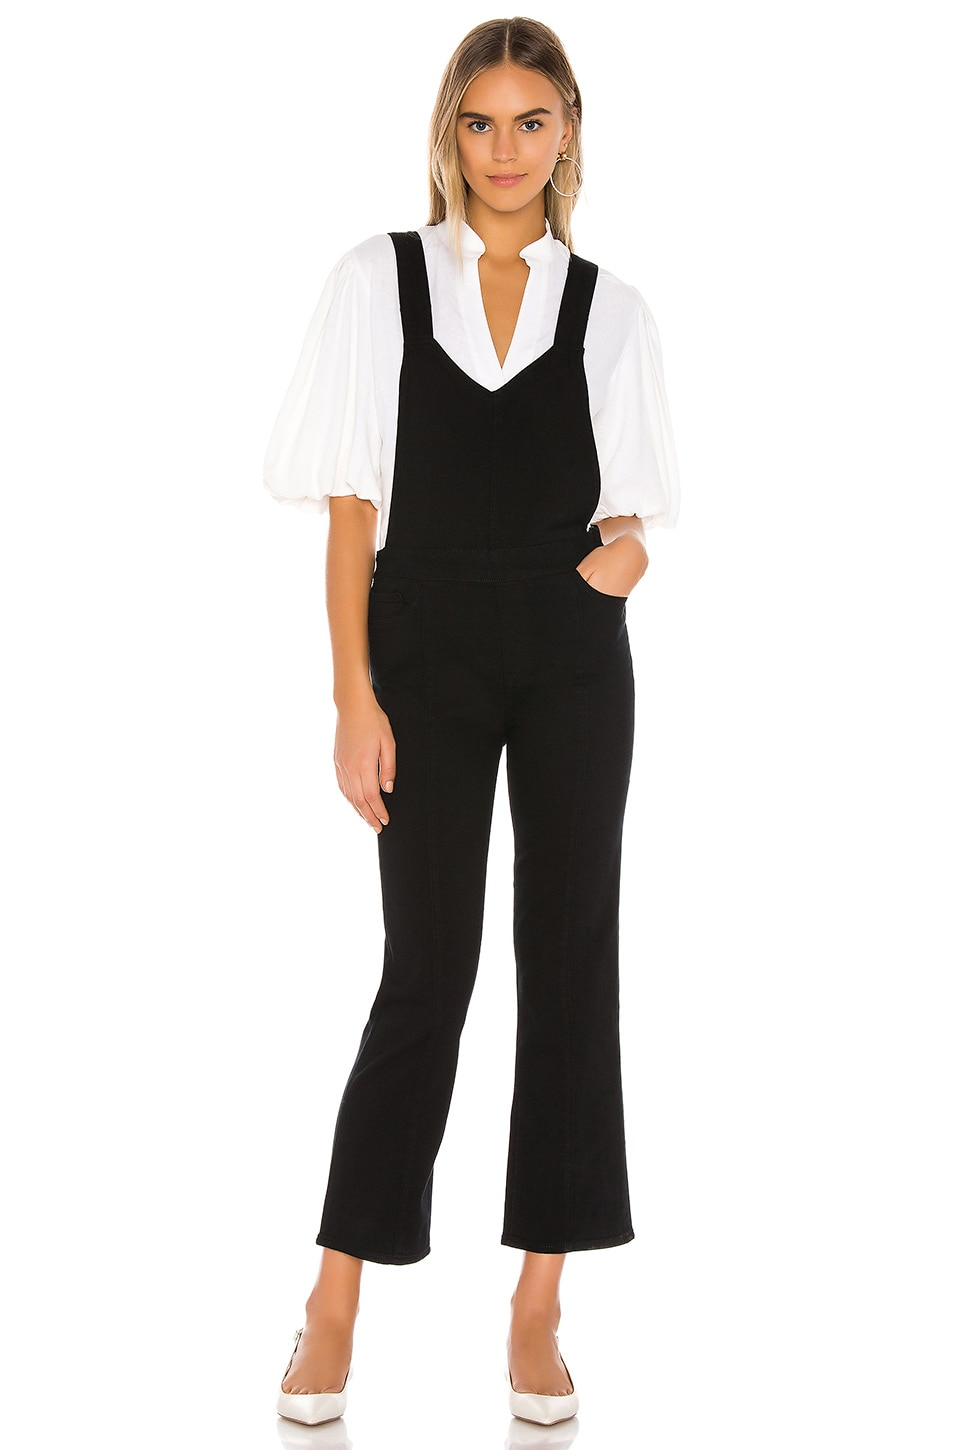 PAIGE Atley Ankle Flare Overall with Seaming in Black Overdye